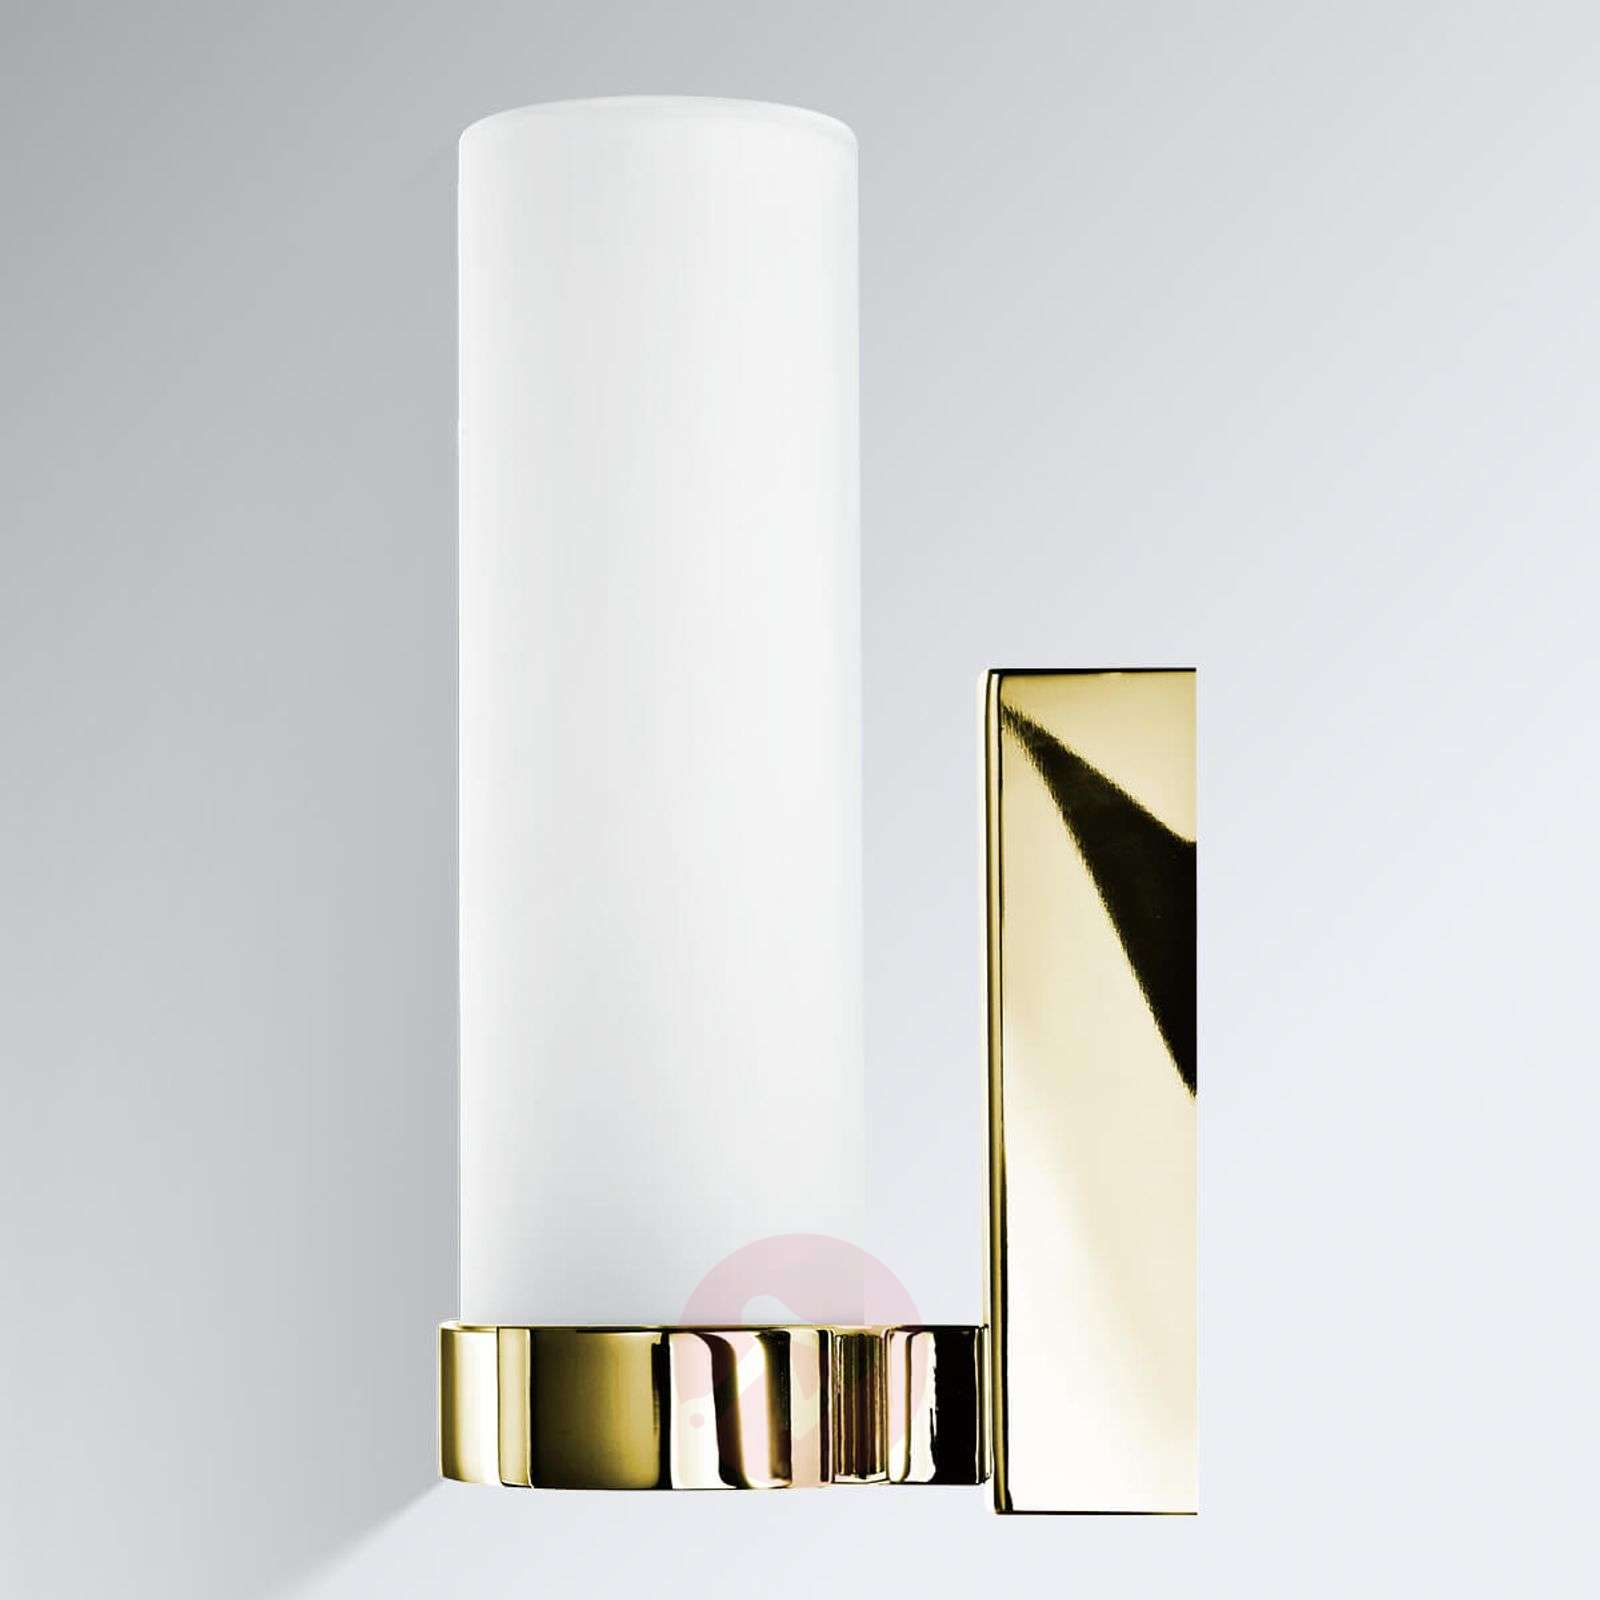 timeless lighting. Metro 22 Timeless Wall Light, Gold-2504637-01 Lighting L